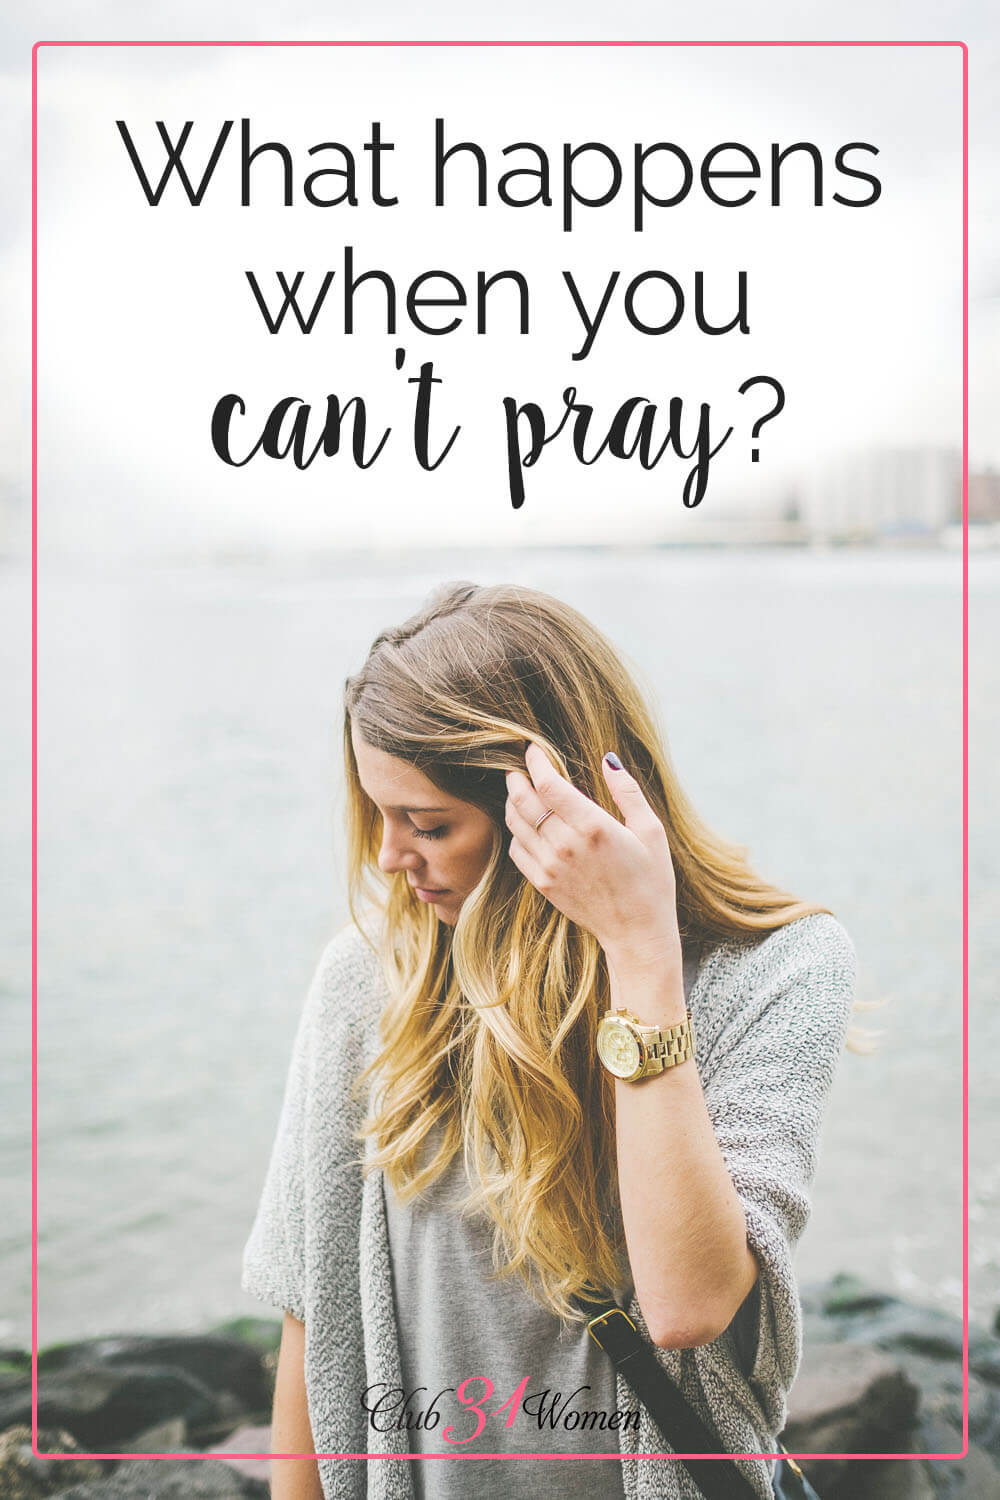 What if you desperately need prayer, but can't seem to pray for yourself? Here's encouragement to find prayer support from the sisters in Christ around you! via @Club31Women